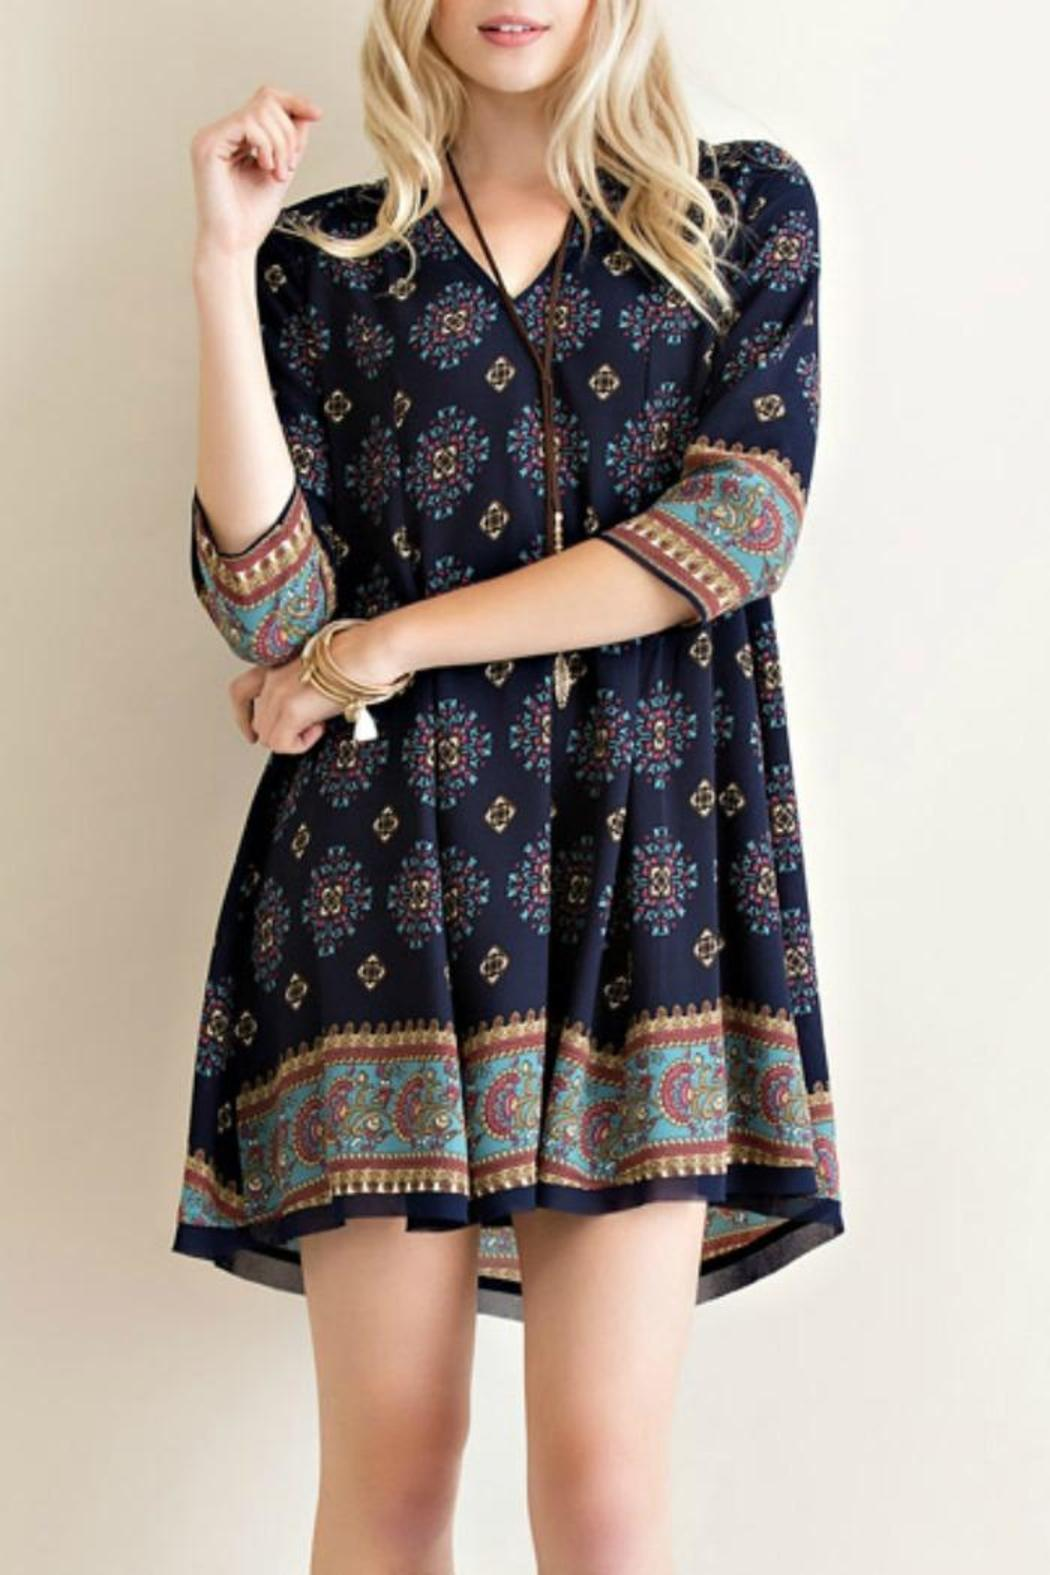 c158eb0d2d80 Entro Boho Style Dress From Mississippi By Exit 16 Diamondhead